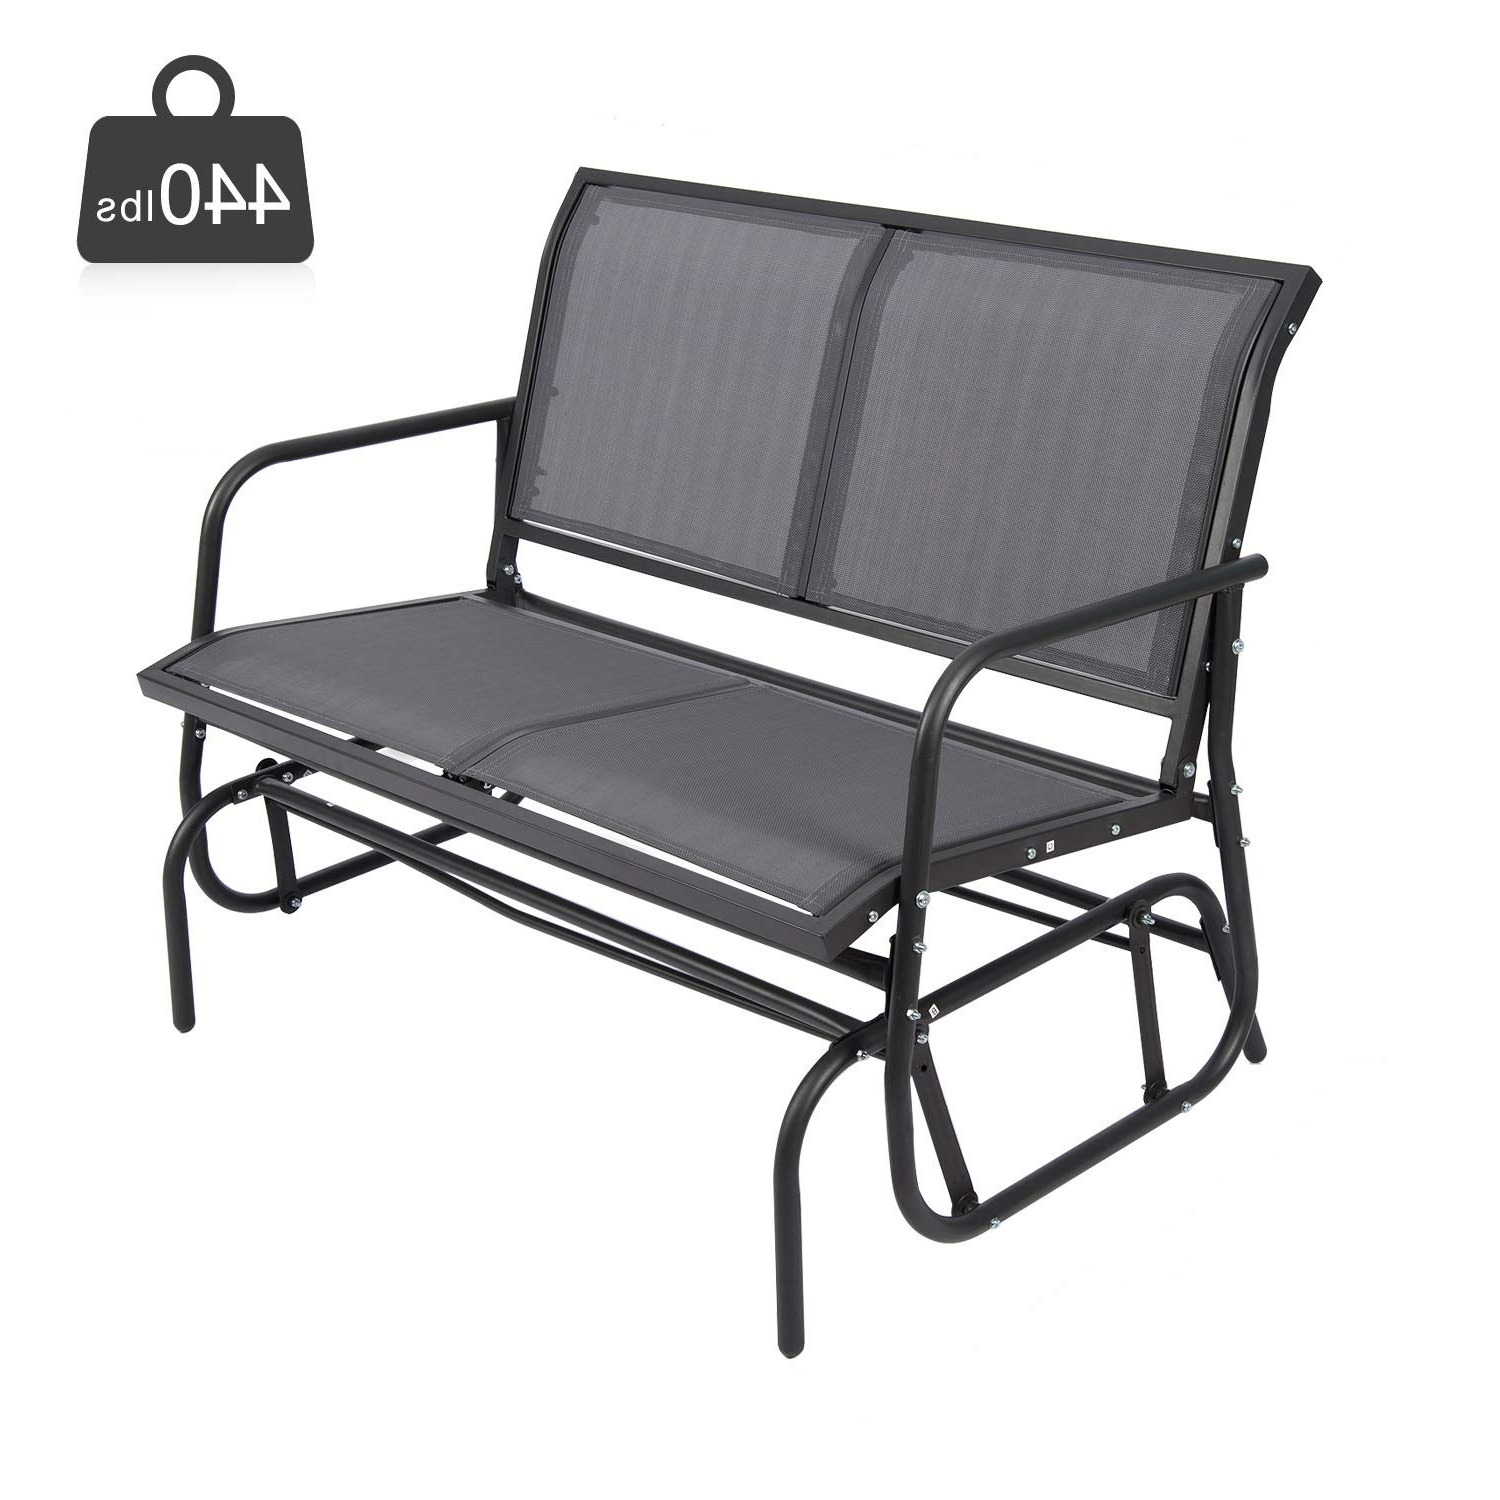 Trendy 2 Person Gray Steel Outdoor Swings For Amazon: Fullwatt Outdoor Swing Glider Chair, Patio Bench (View 5 of 30)